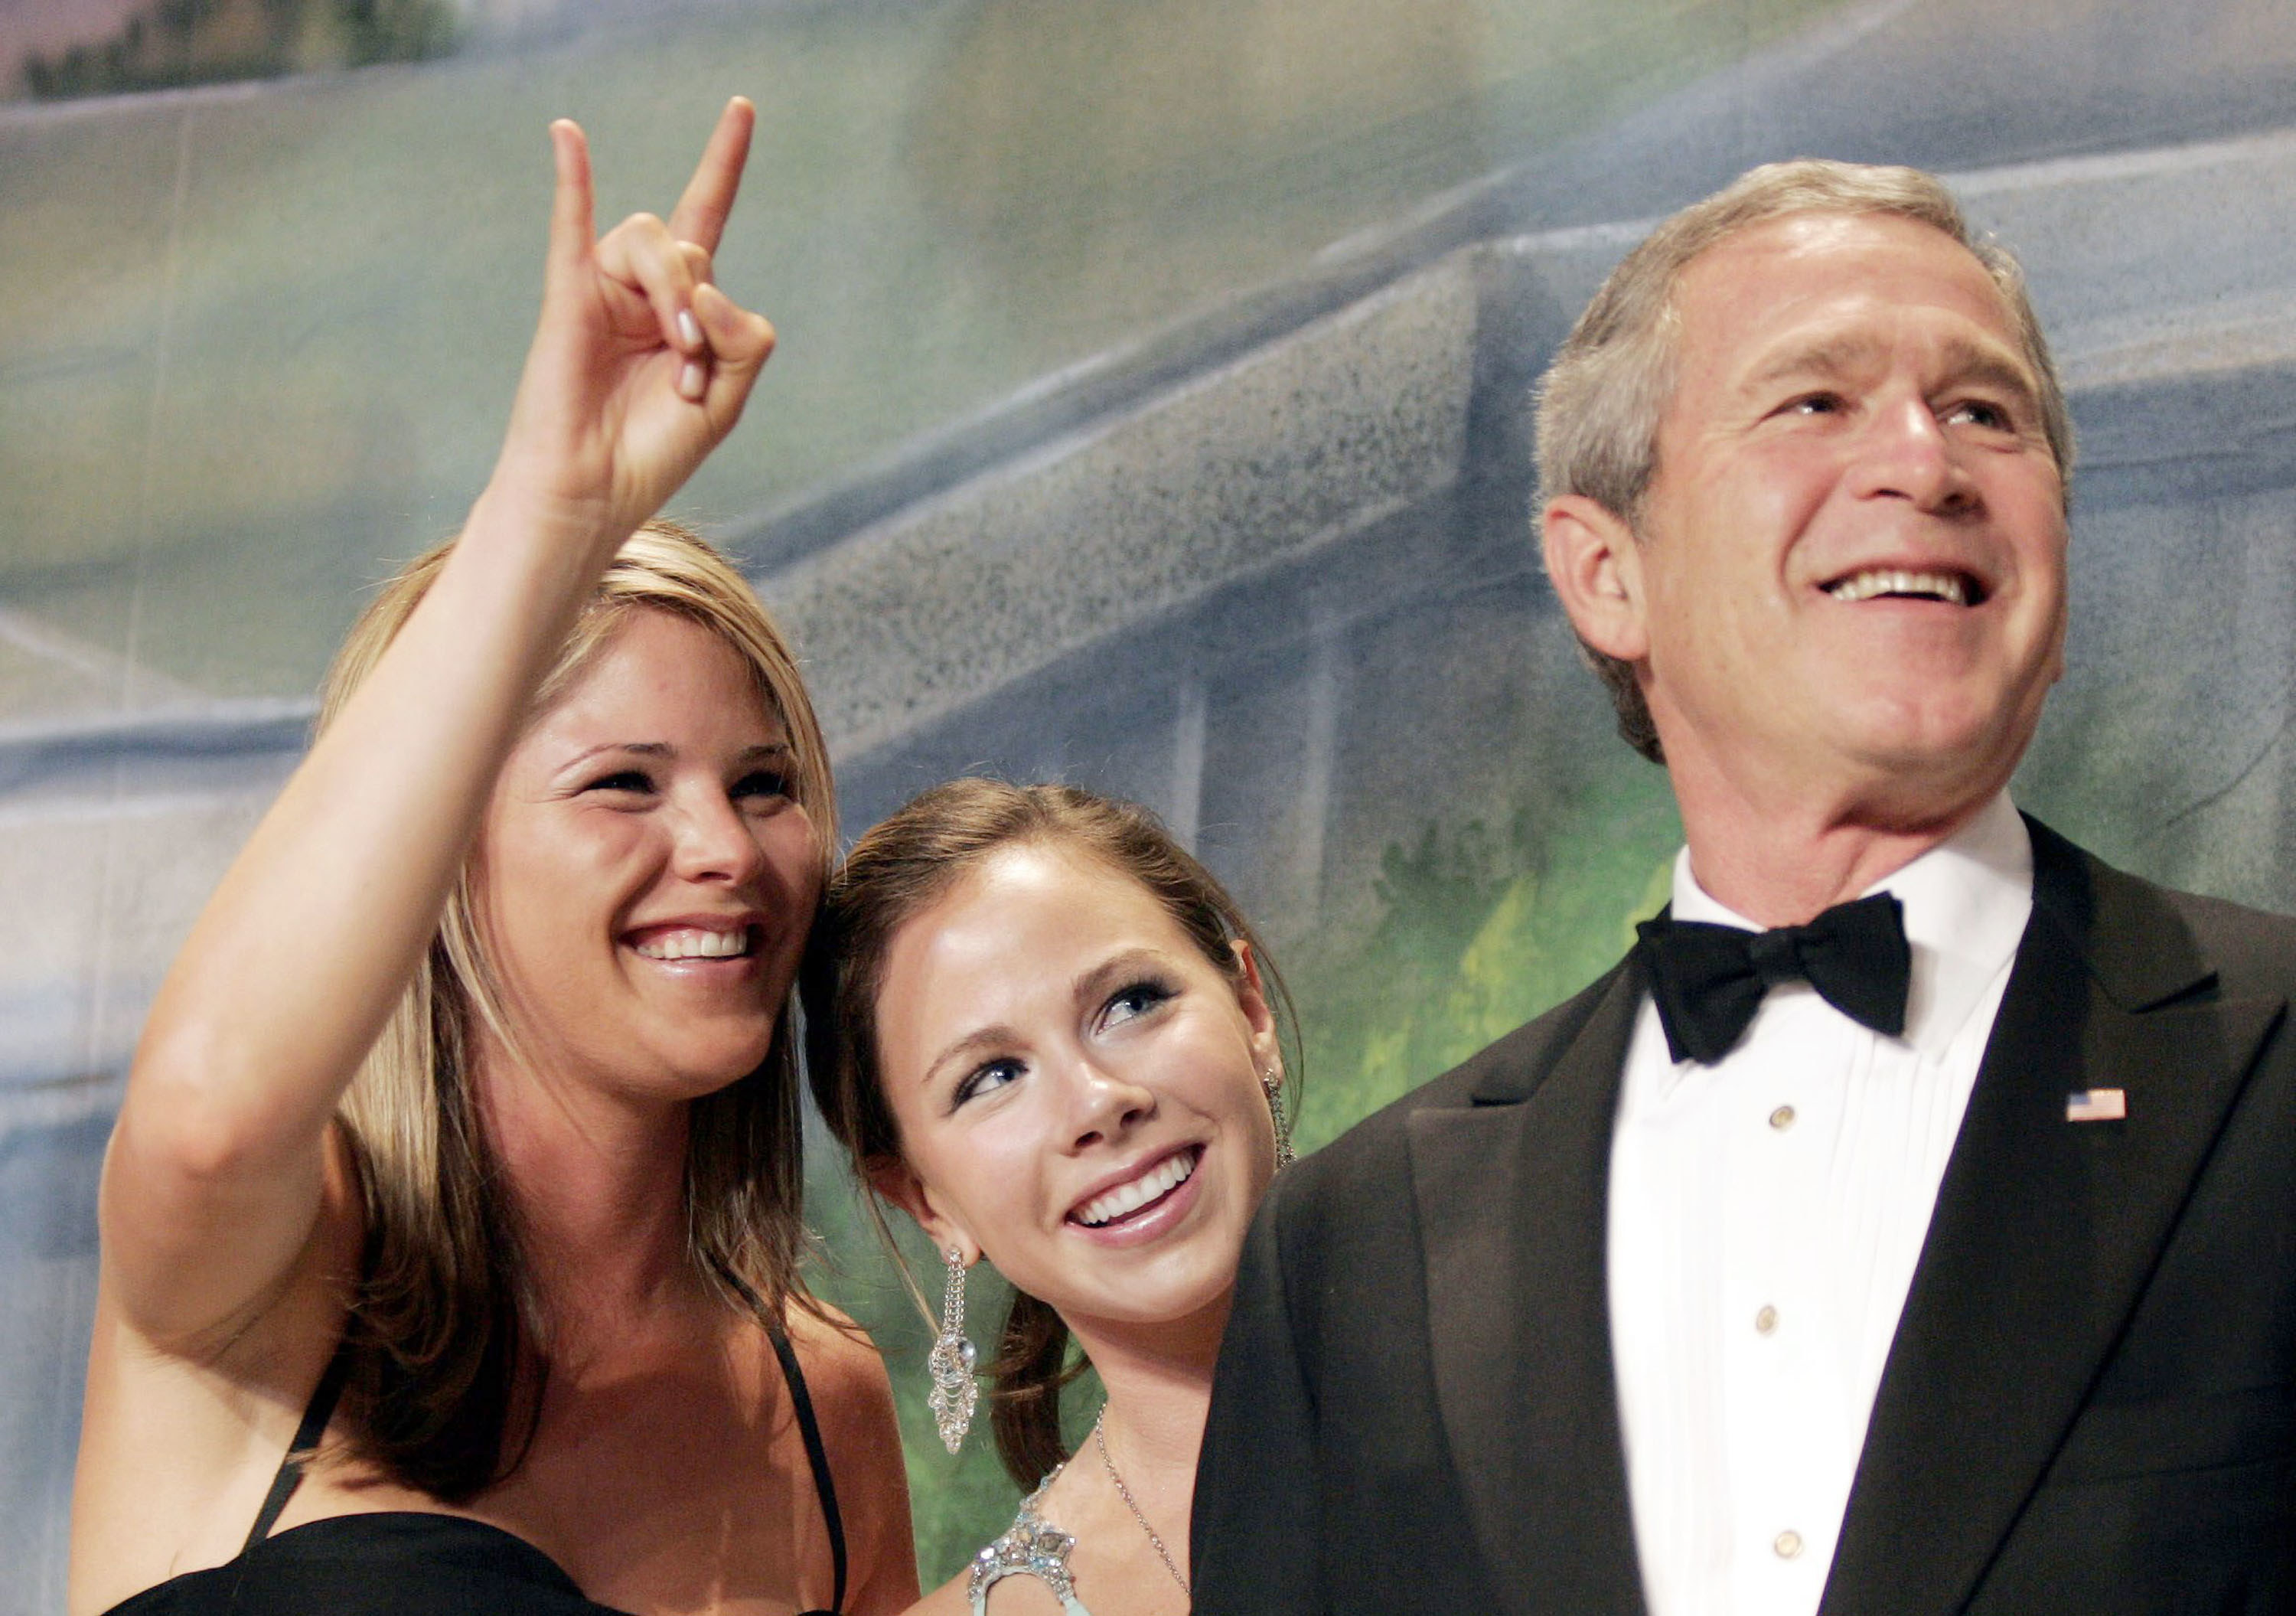 """One of the Bush twins makes a """"devil horns"""" symbol with one hand"""